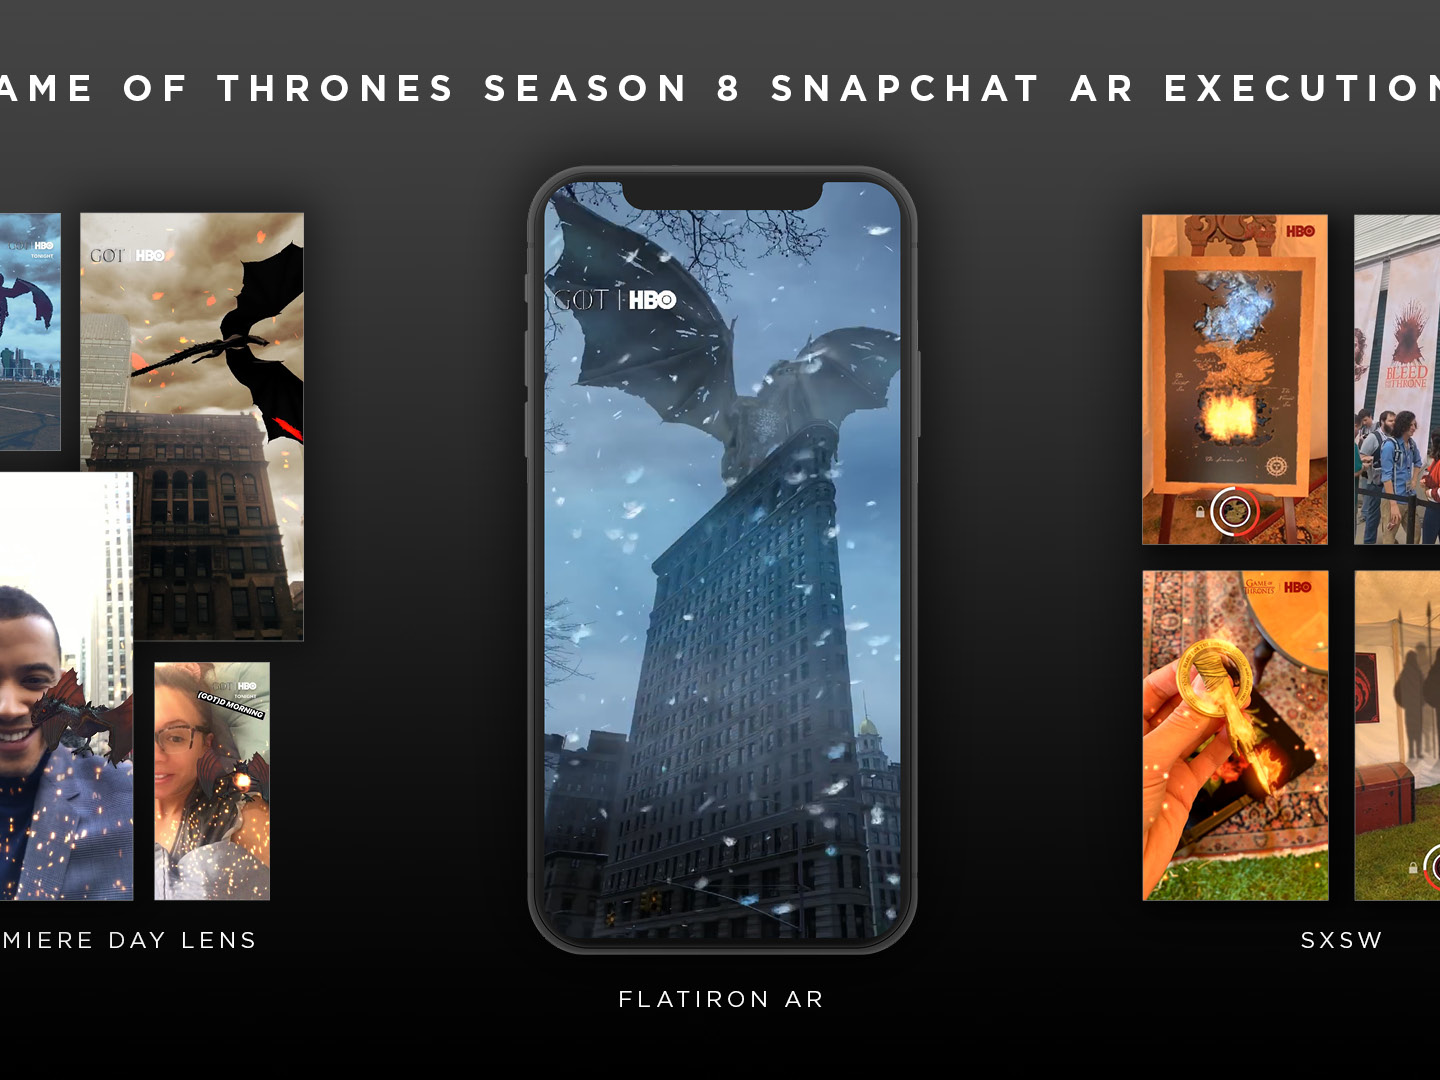 Game of Thrones: Snapchat Executions Thumbnail